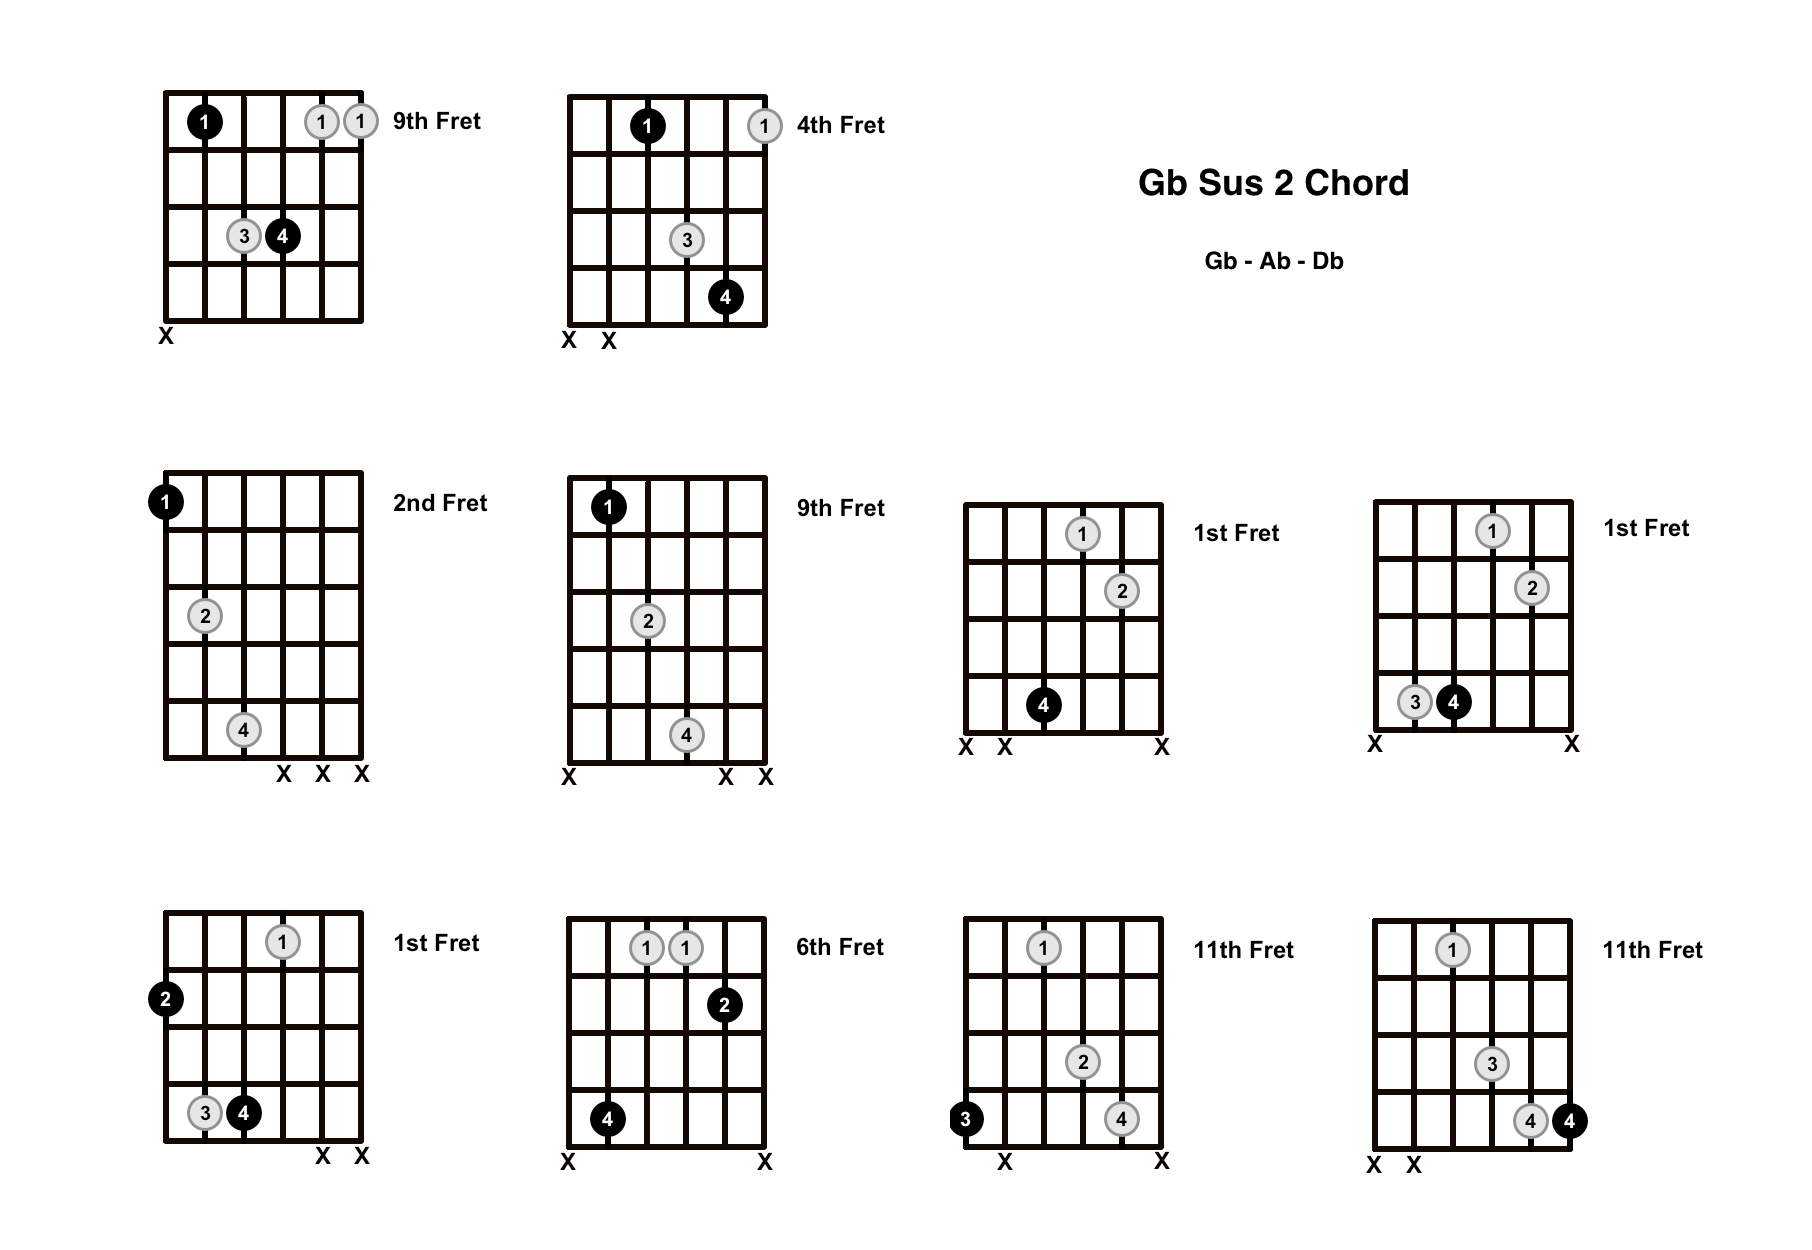 Gb Sus 2 Chord On The Guitar (G Flat Suspended 2) – Diagrams, Finger Positions and Theory